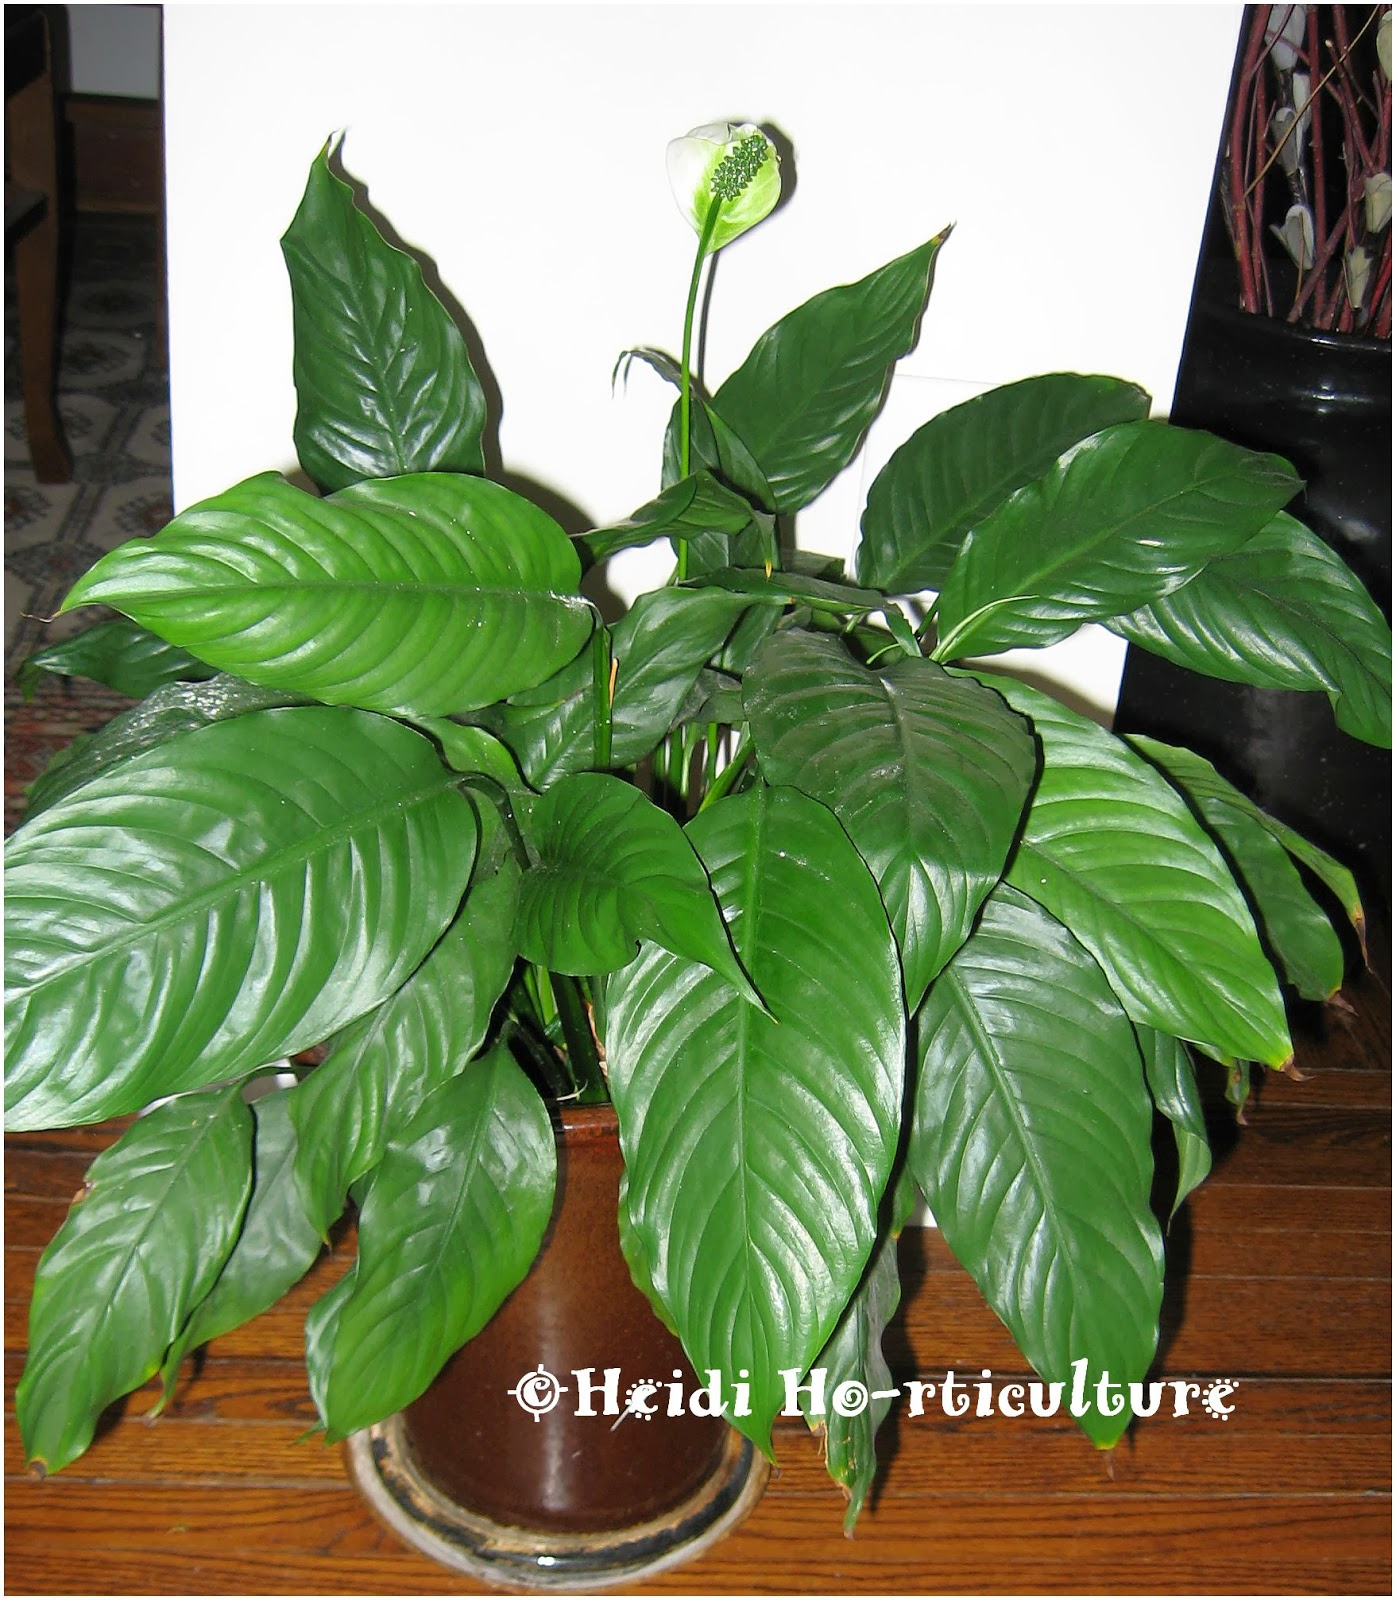 Heidi horticulture february 2014 peace lily spathiphyllum brown tips dhlflorist Gallery